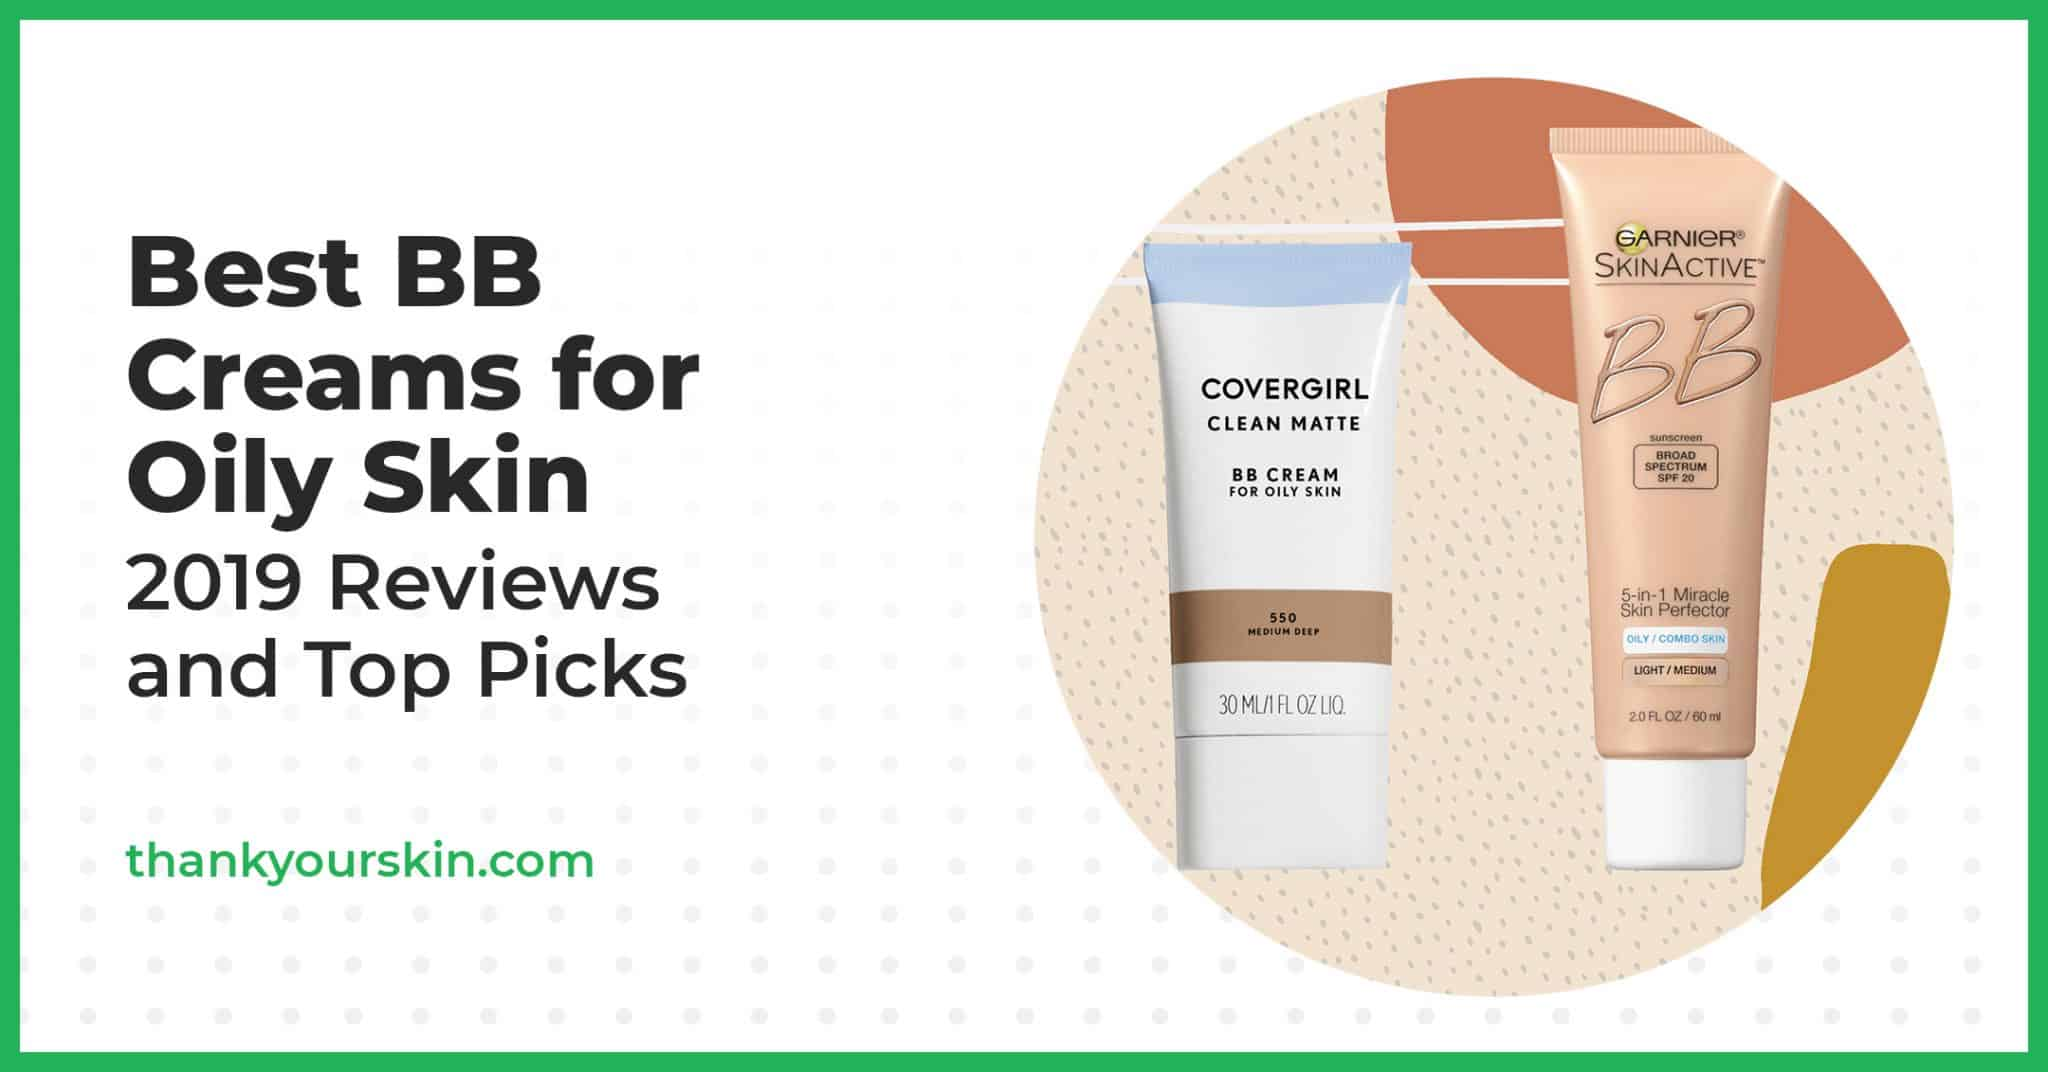 Best BB Creams for Oily Skin—2021 Reviews and Top Picks